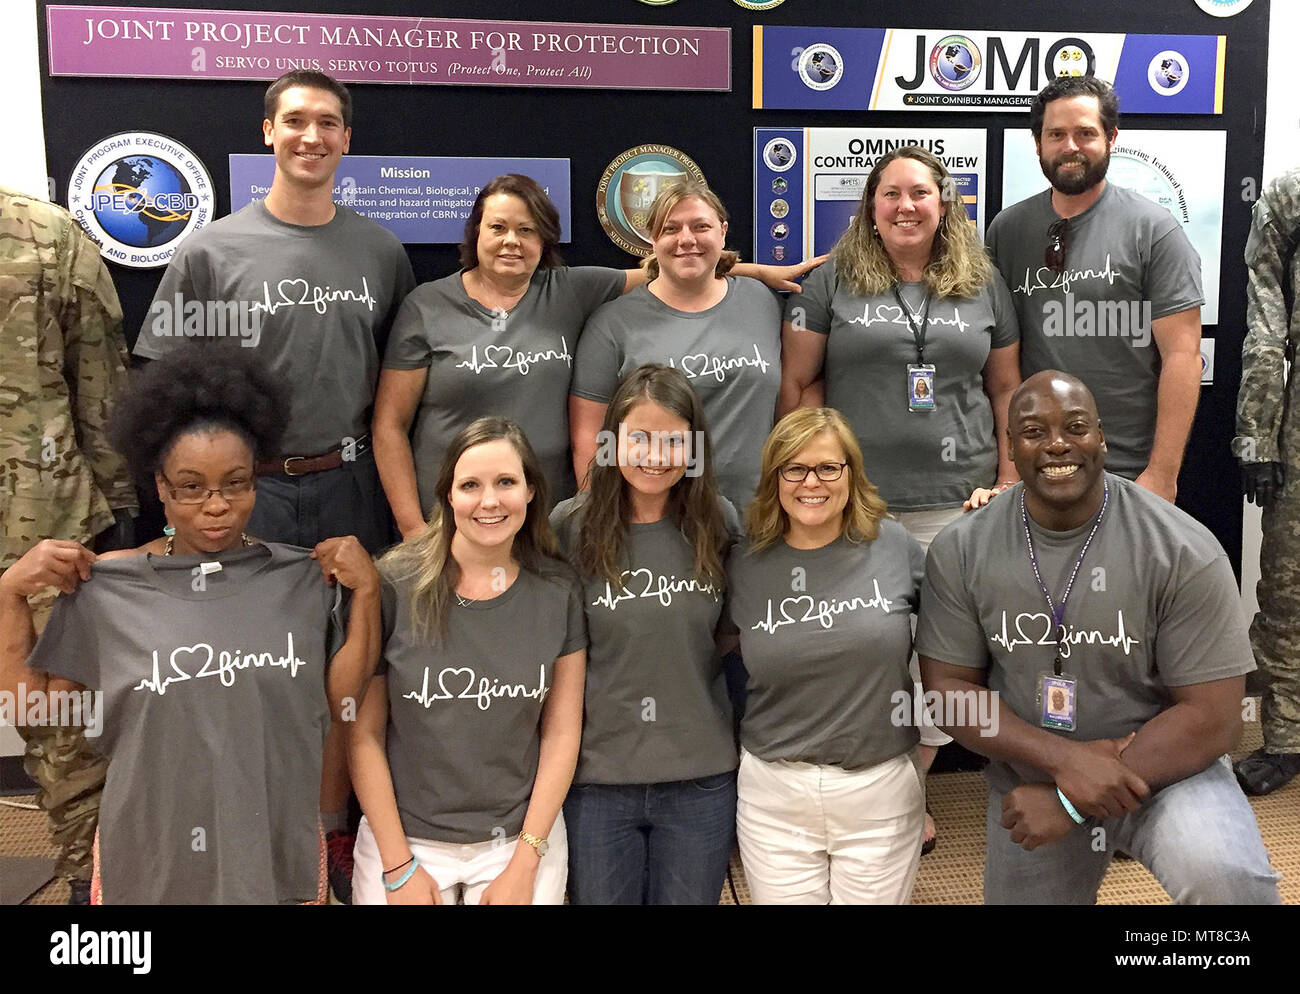 "The Joint Project Manager for Protection Team at Marine Corps Systems Command surprise Financial Management Analyst Michael Blumenthal with ""I love Finn"" shirts. Michael felt supported by his colleagues when his youngest son Finn had his second open heart surgery last September. - Stock Image"